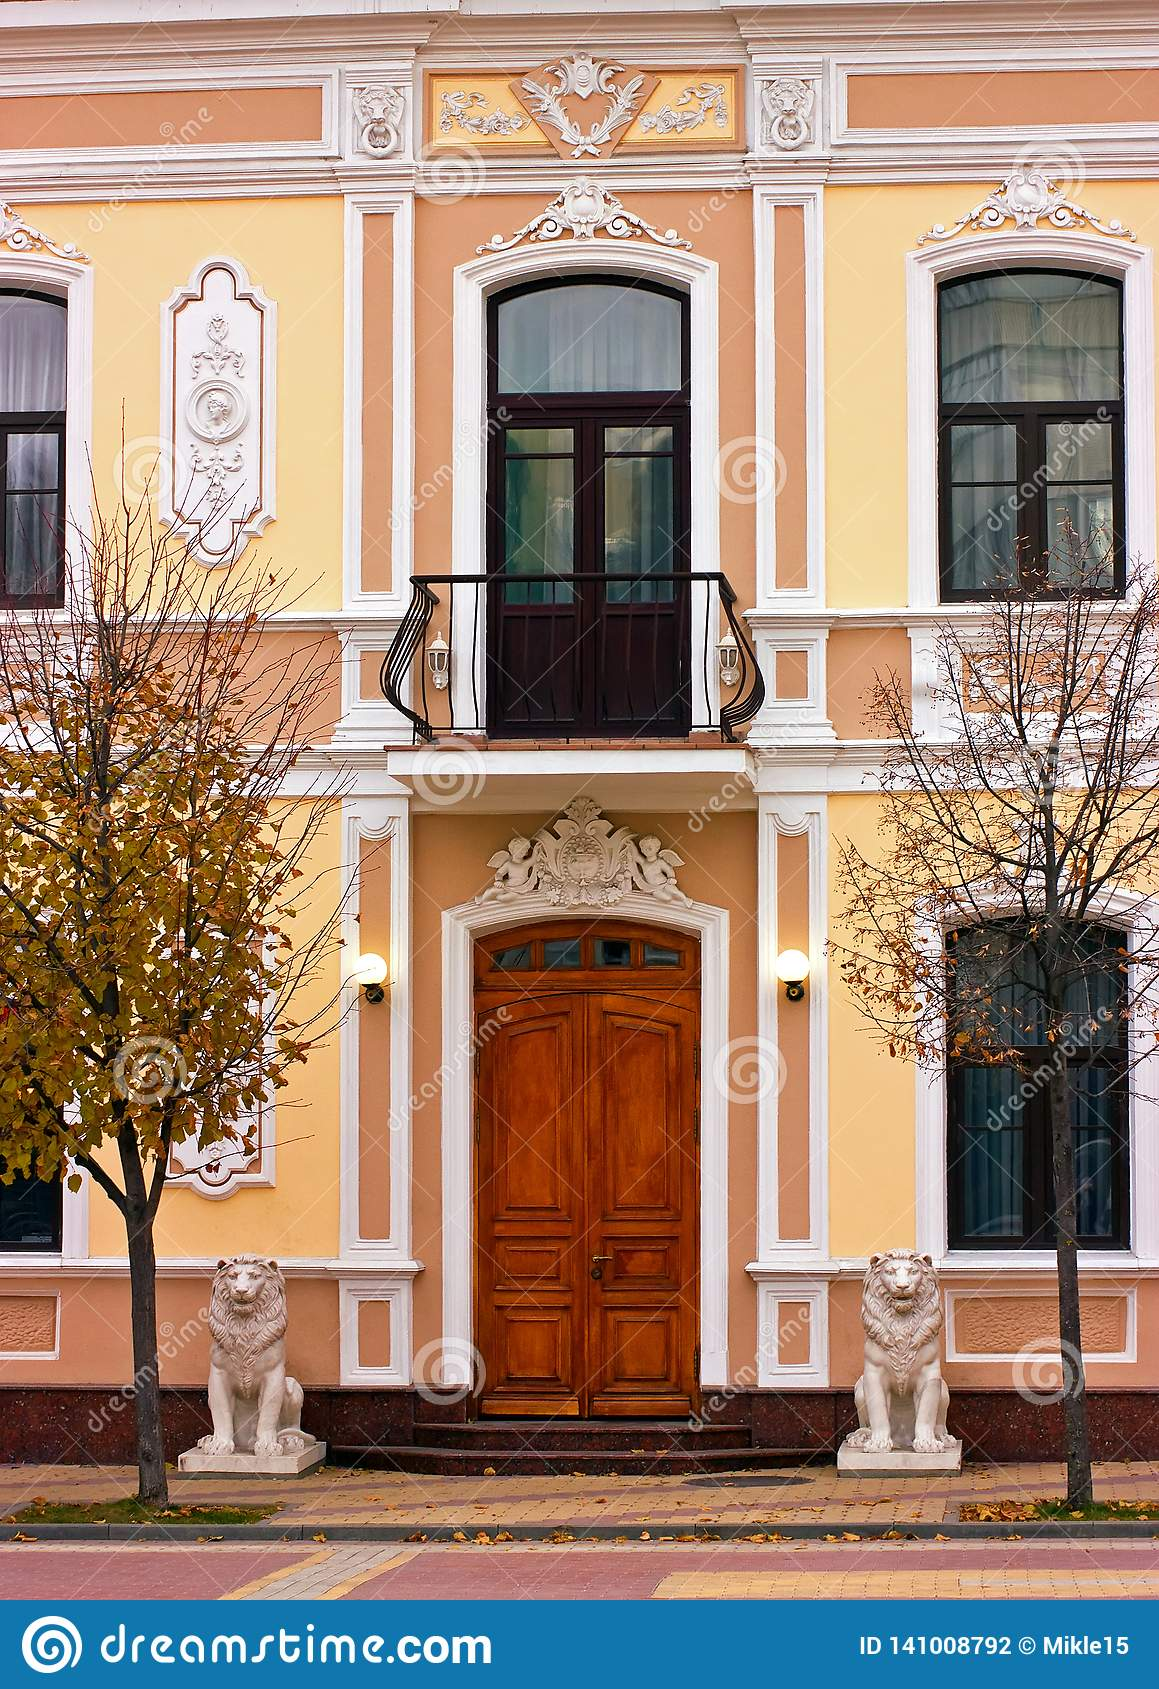 Dsk Doors Entrance Of A Home Stock Photo Image Of Facade Ancient 141008792